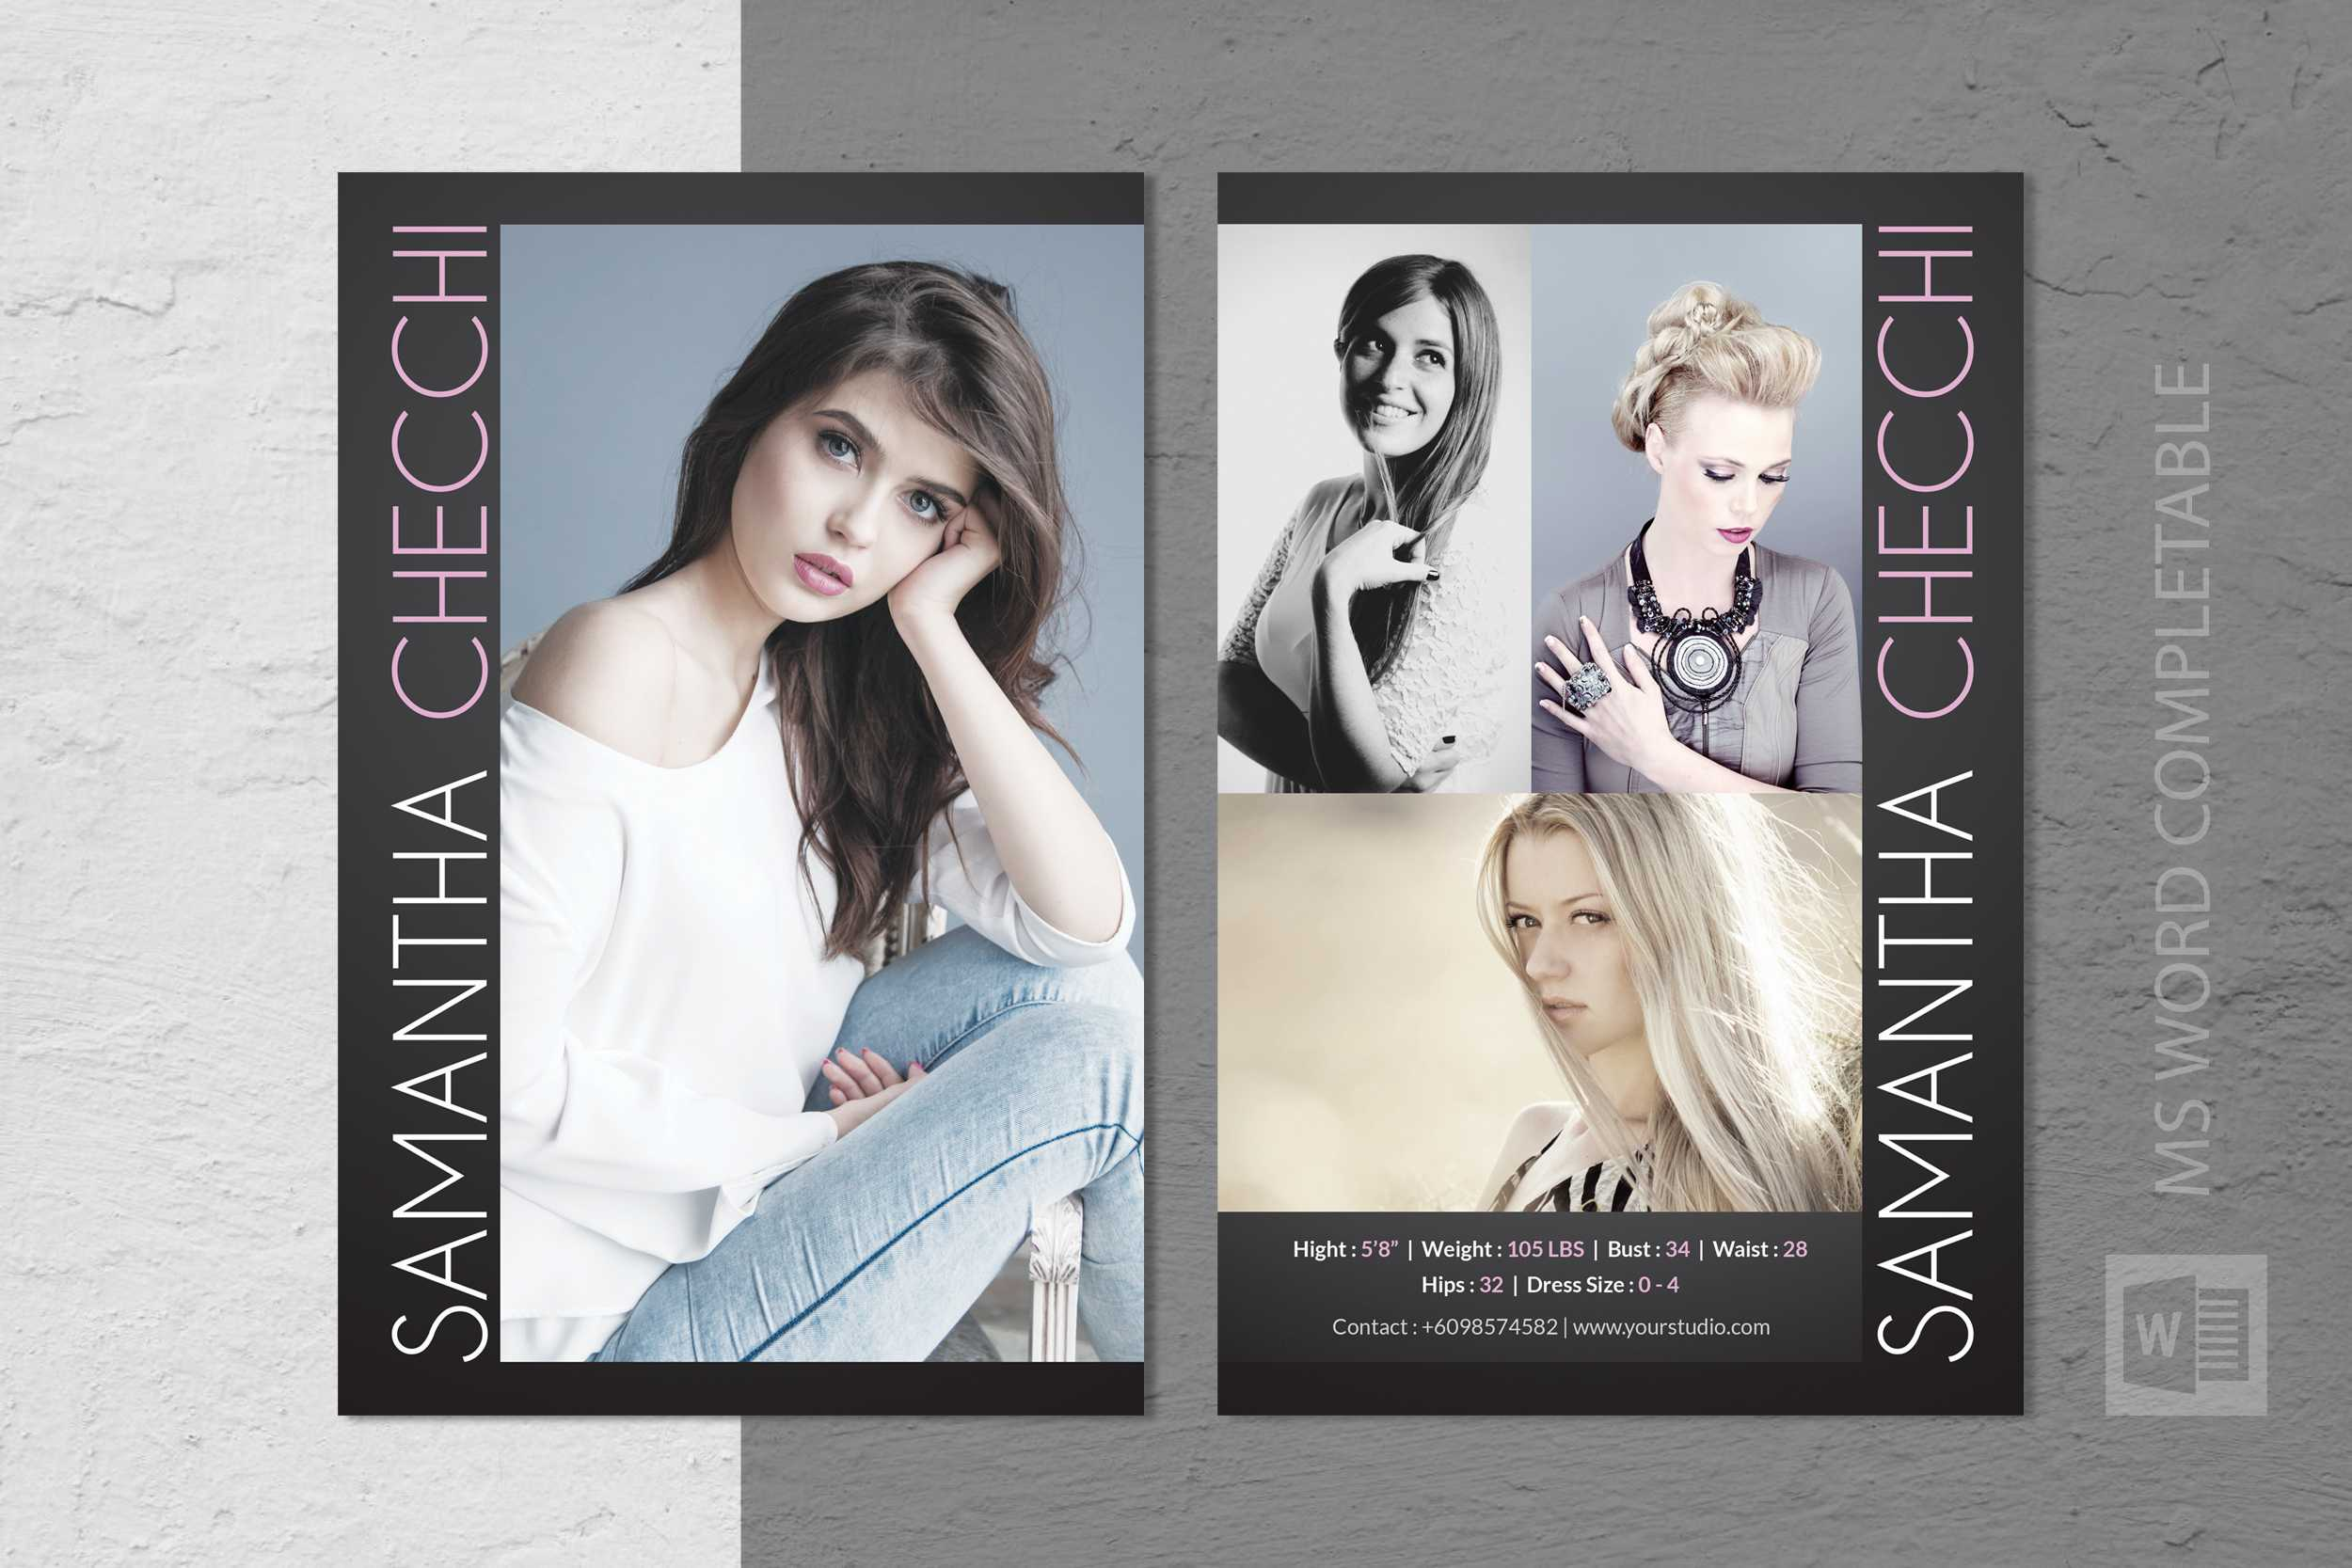 015 Model Comp Card Template Ideas Outstanding Psd Free Pertaining To Free Model Comp Card Template